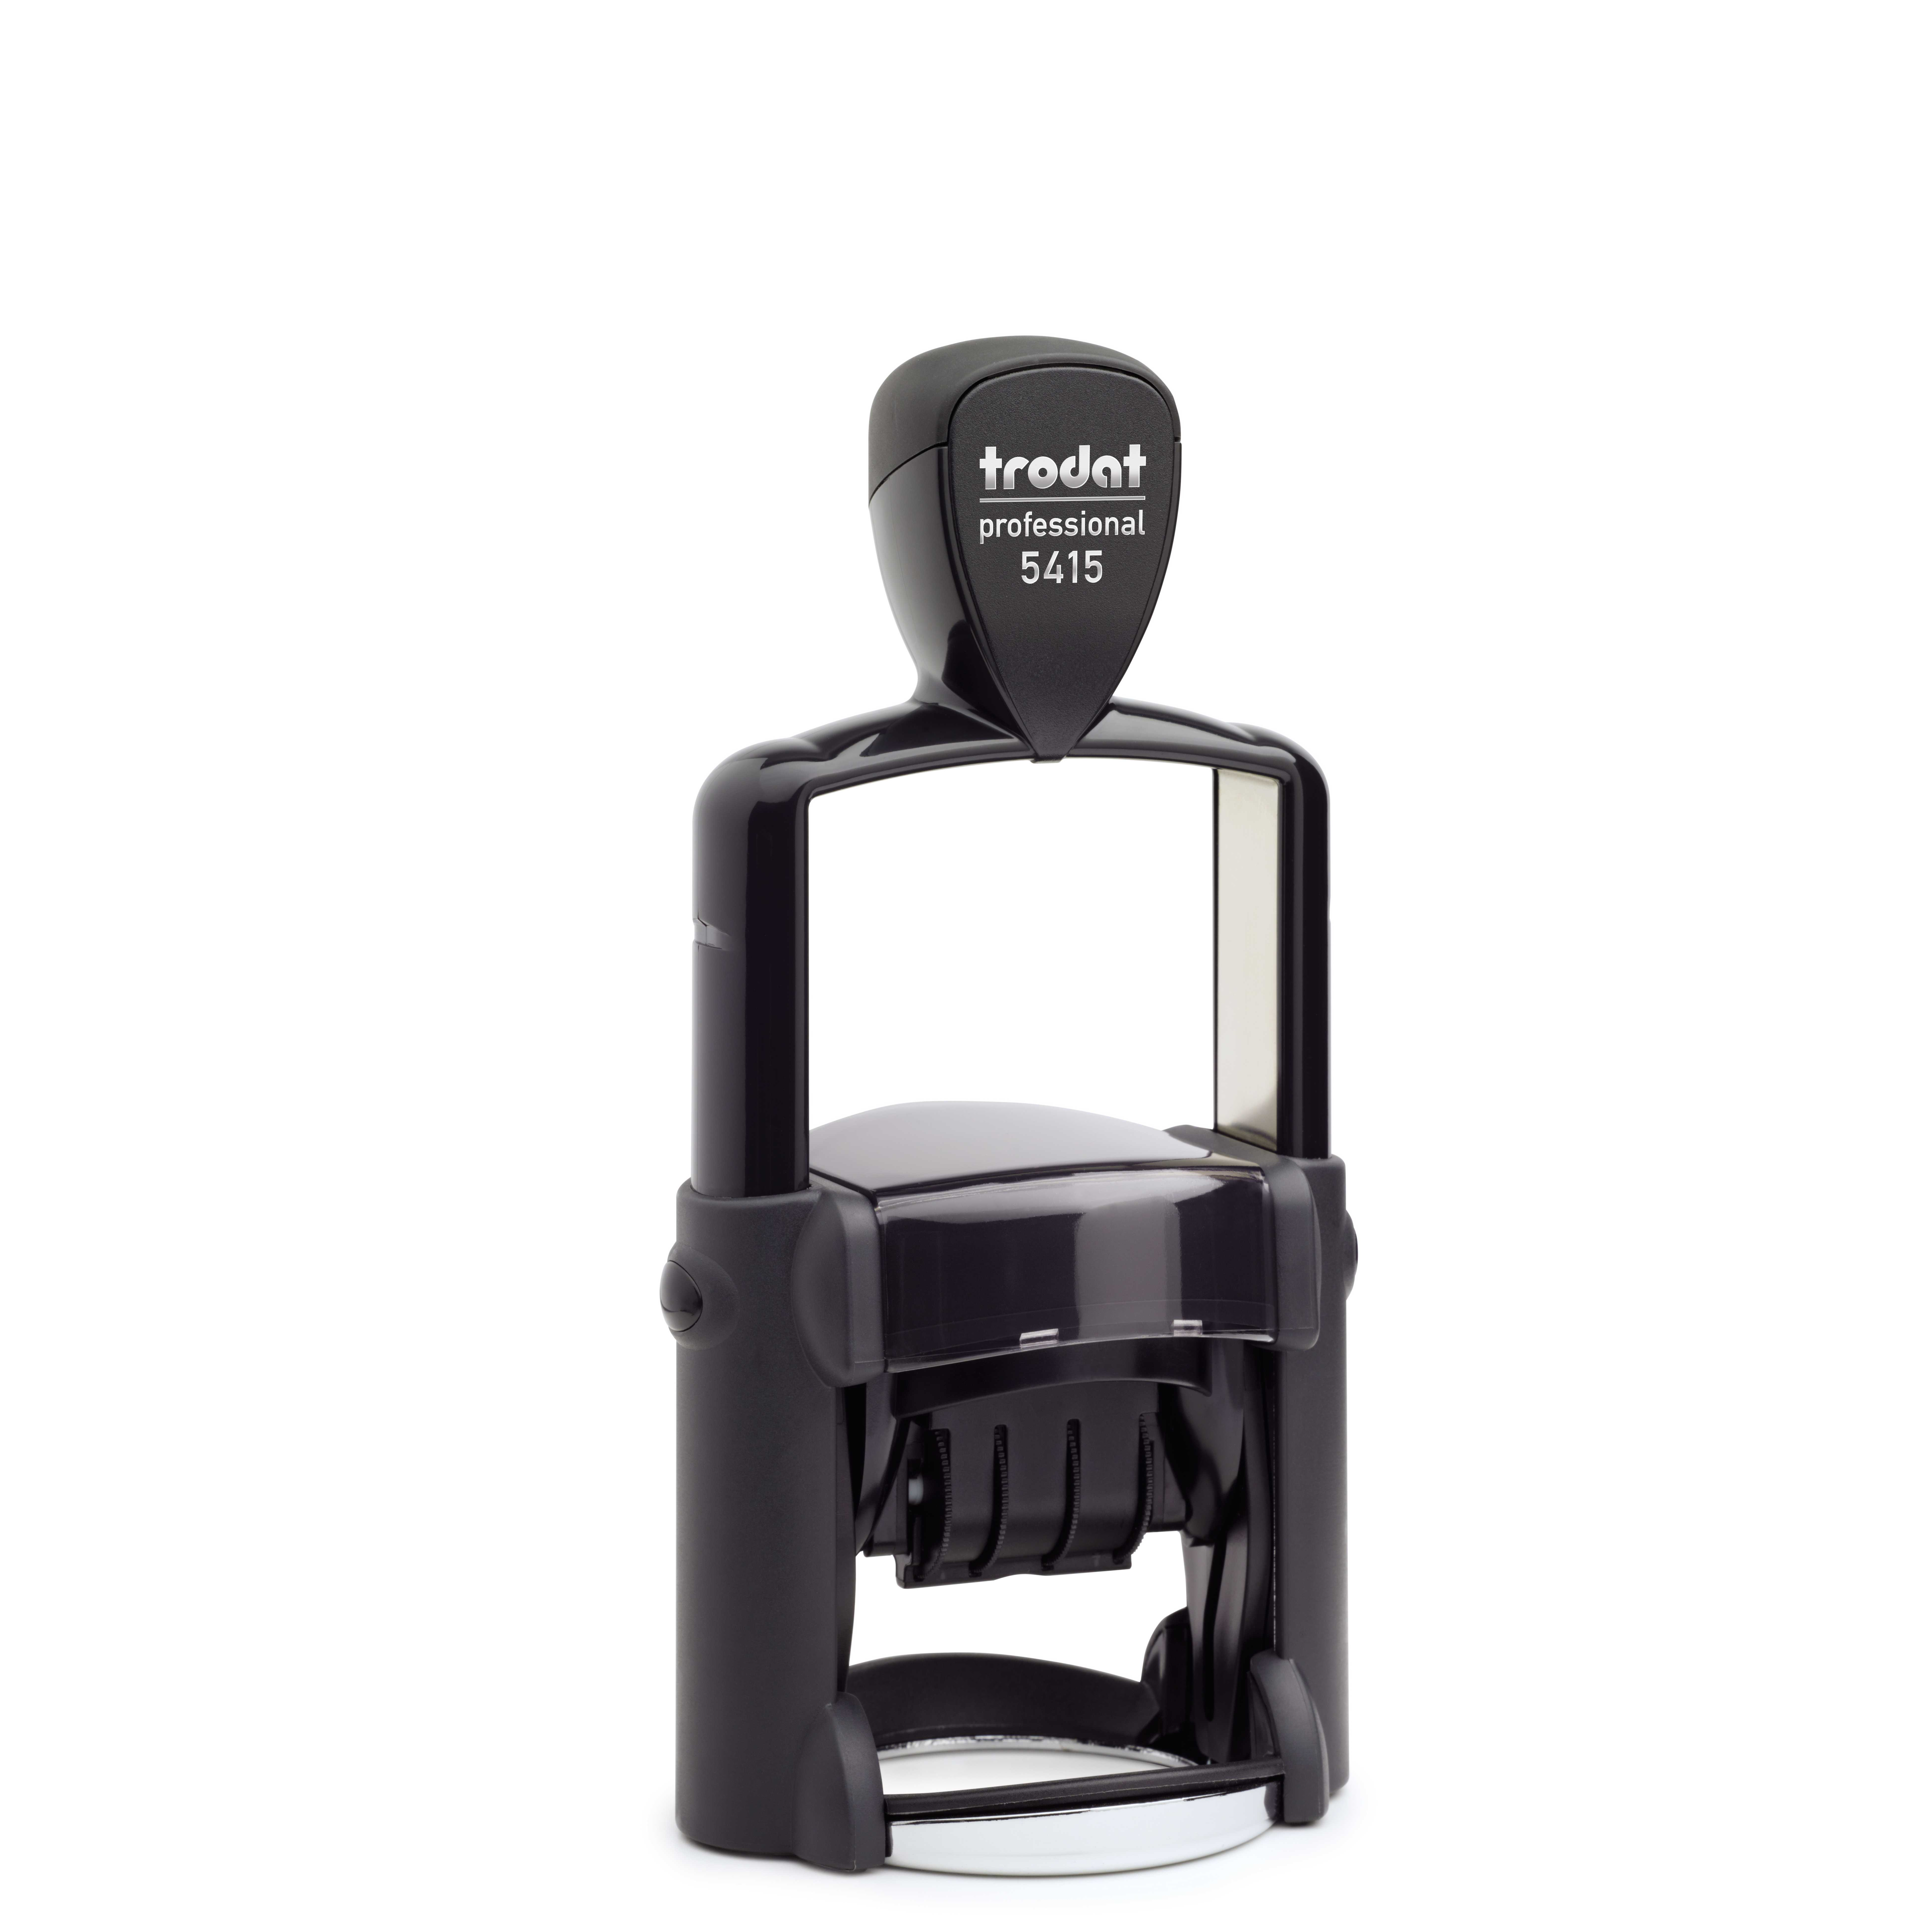 1-3/4″ diameter Trodat Self-Inking Professional Date Stamp